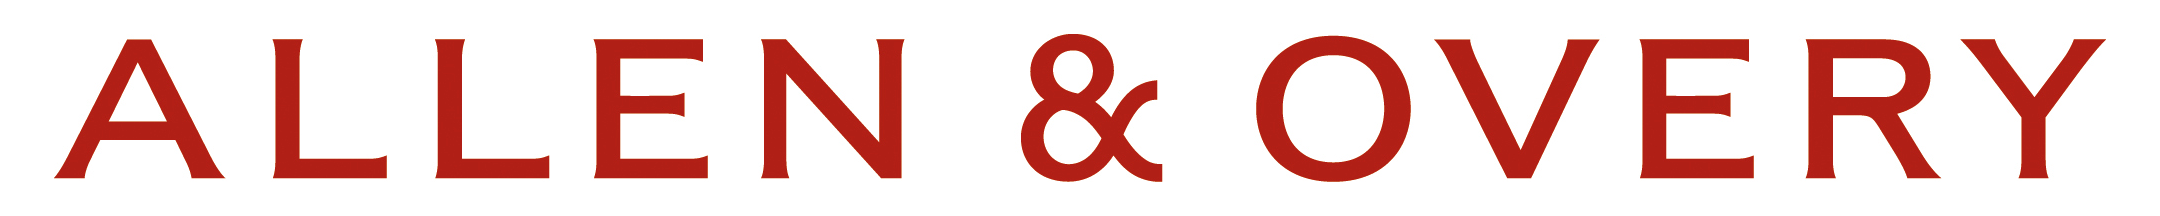 allen_overy_logo_red_rgb.png